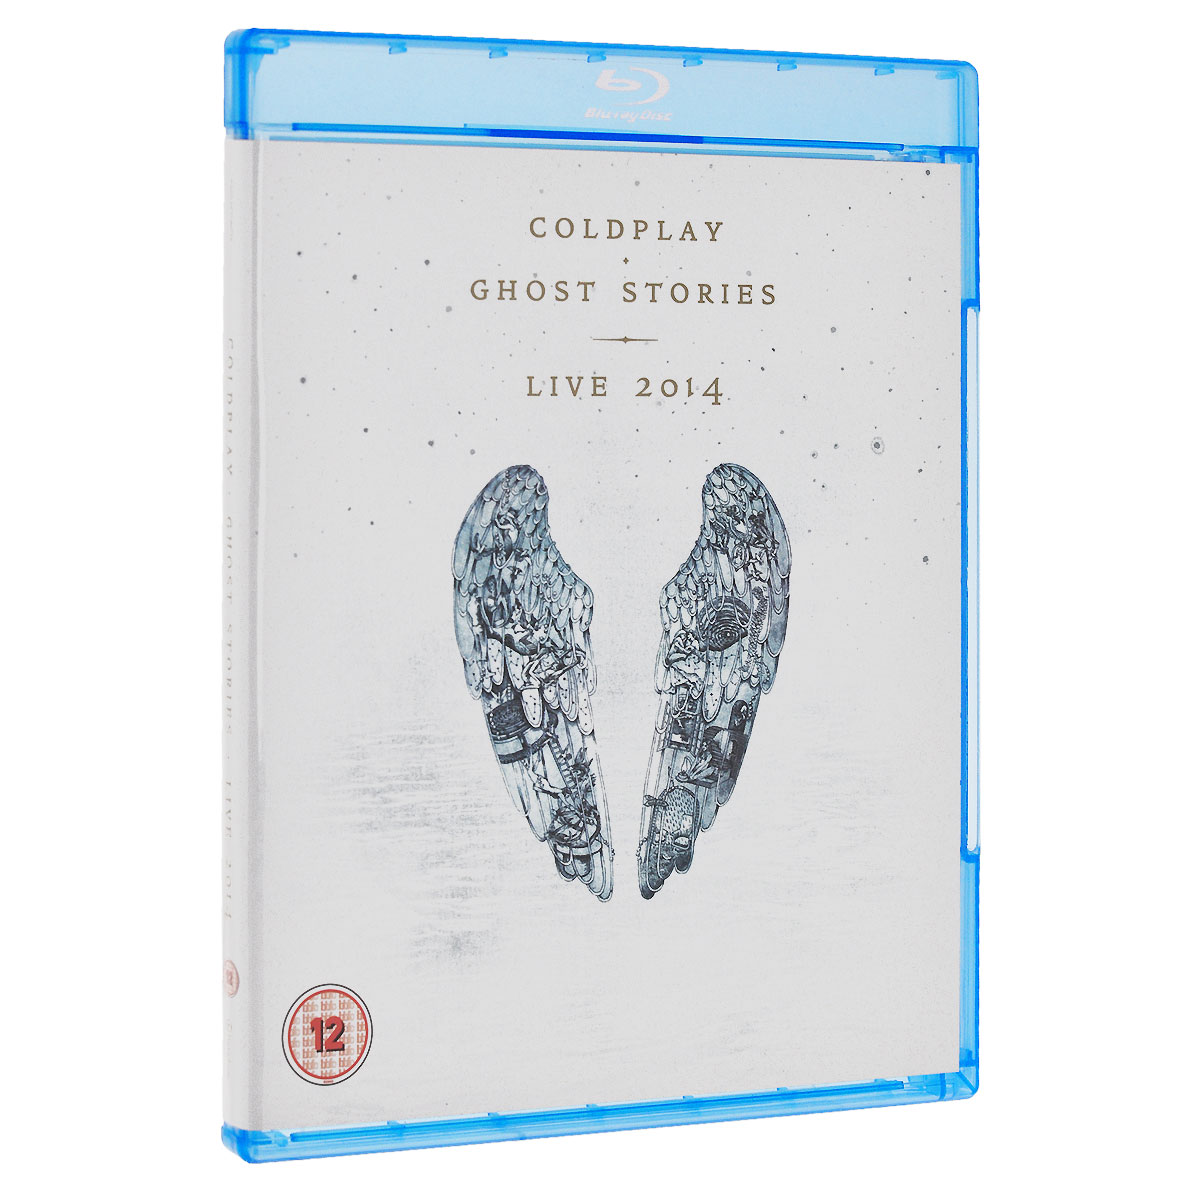 Coldplay. Ghost Stories. Live 2014 (Blu-ray + CD) stone soup